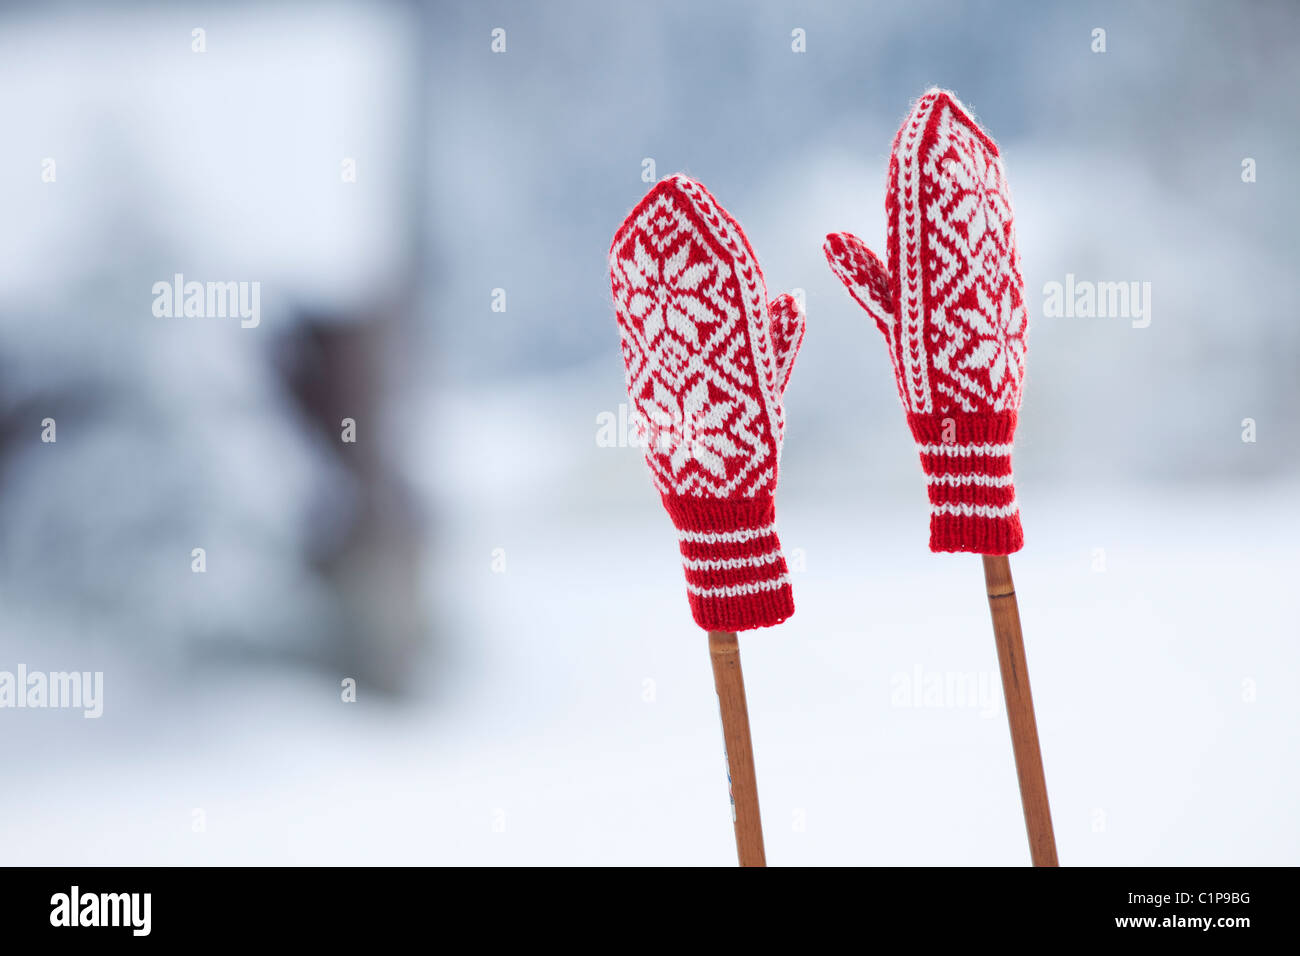 Two woolly gloves on ski poles - Stock Image